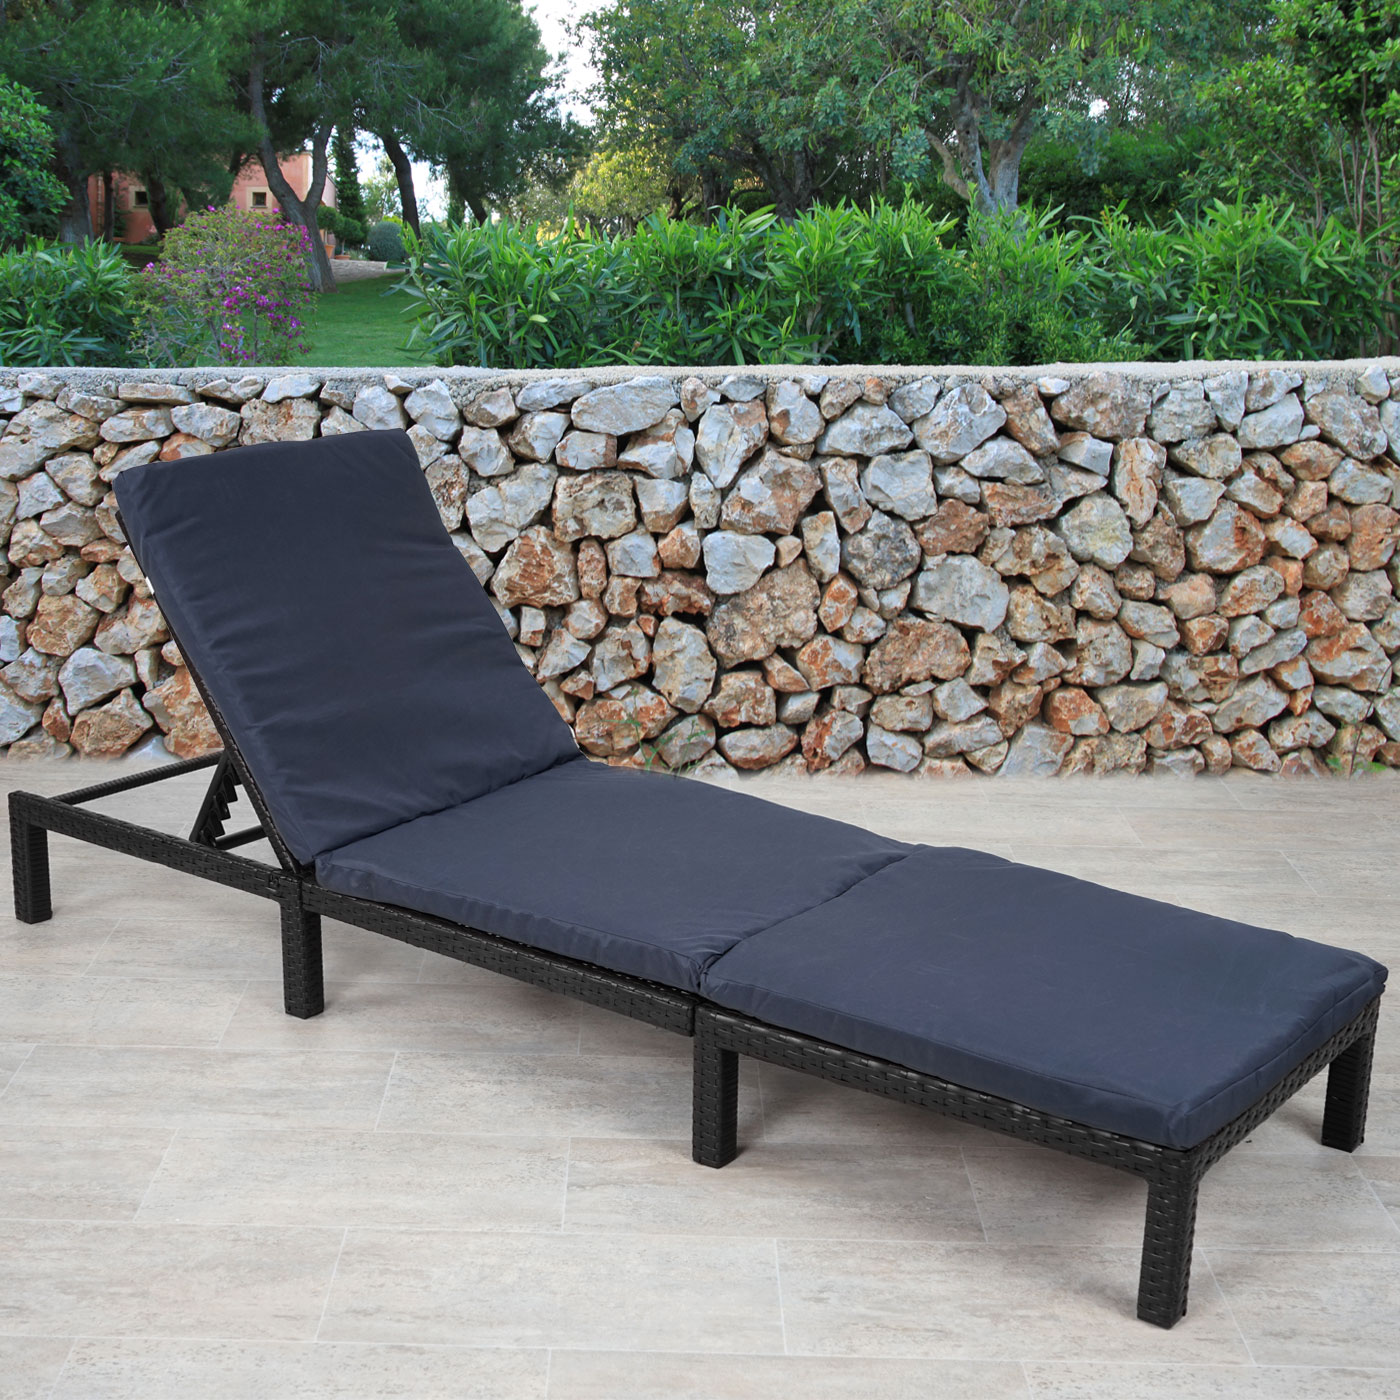 poly rattan sonnenliege hwc a51 relaxliege gartenliege liege premium basic ebay. Black Bedroom Furniture Sets. Home Design Ideas